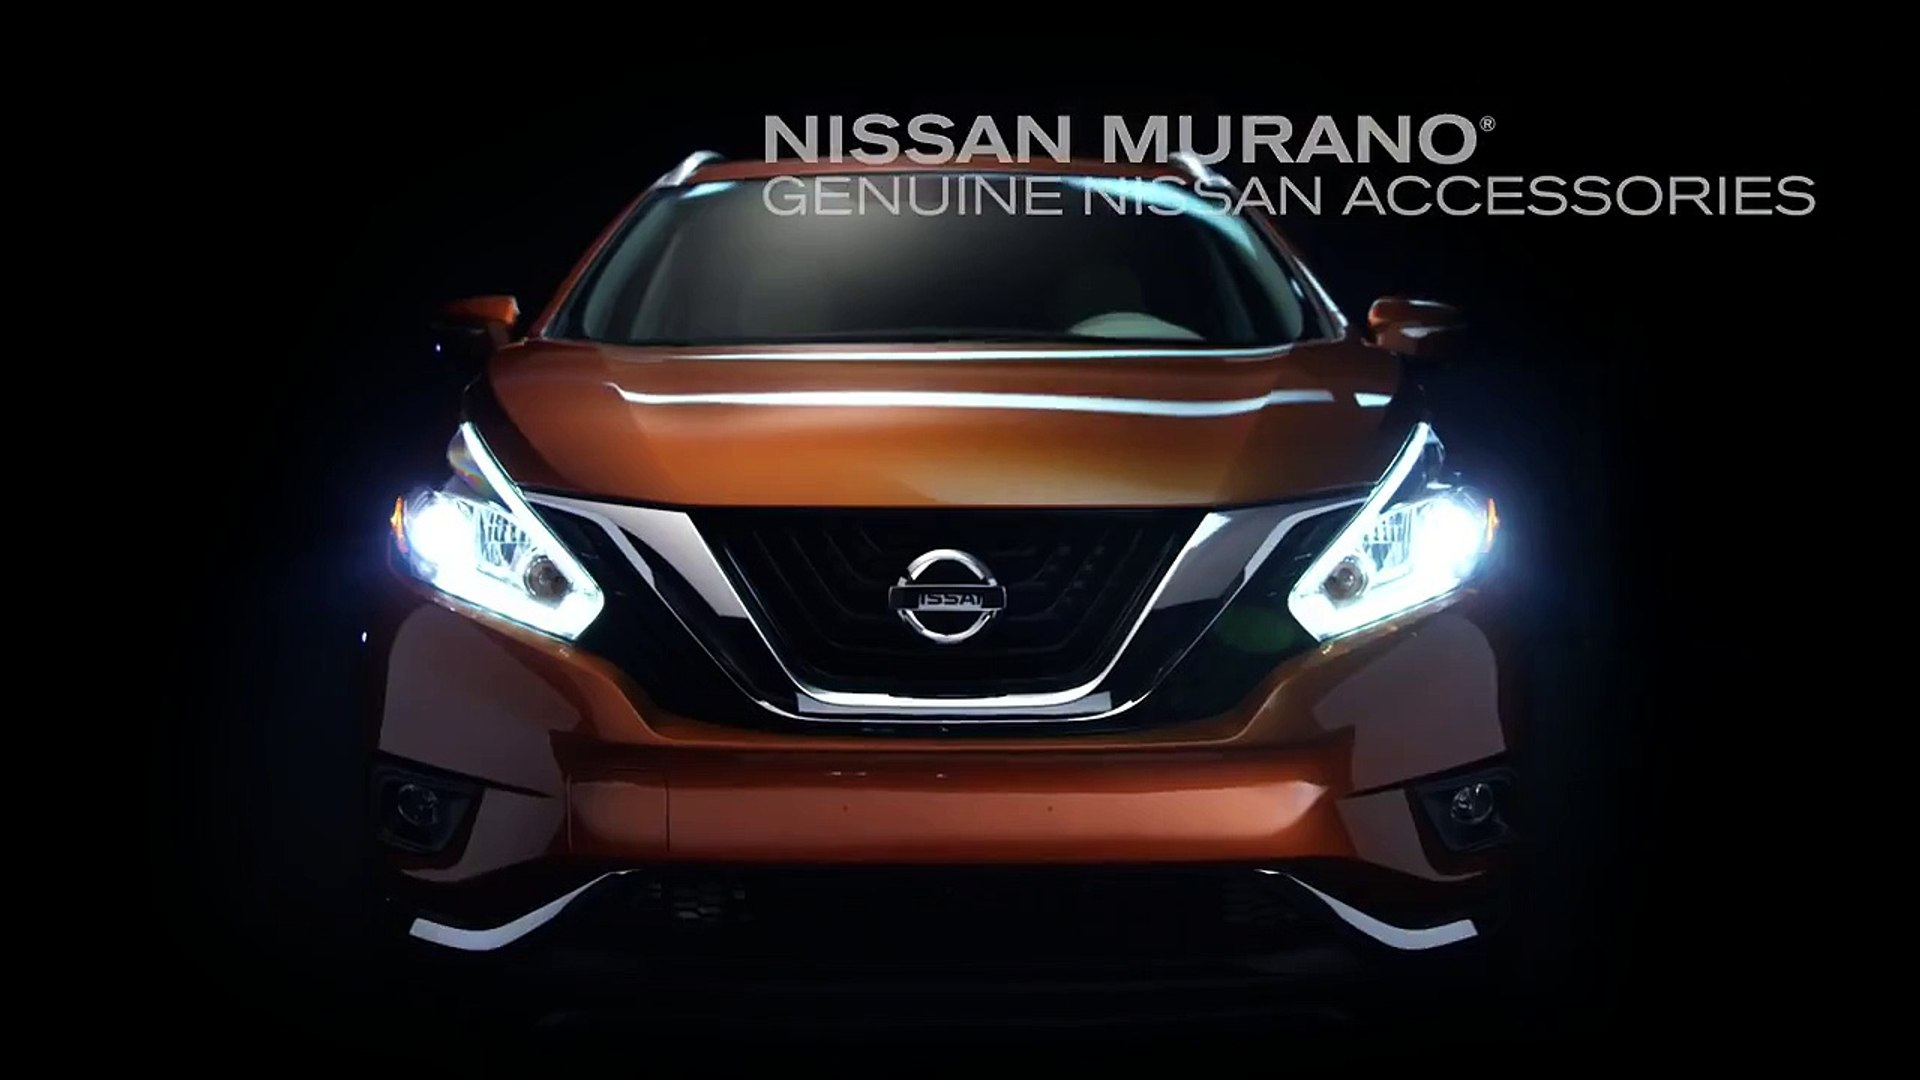 Nissan Murano Accessories Utility Dailymotion Video